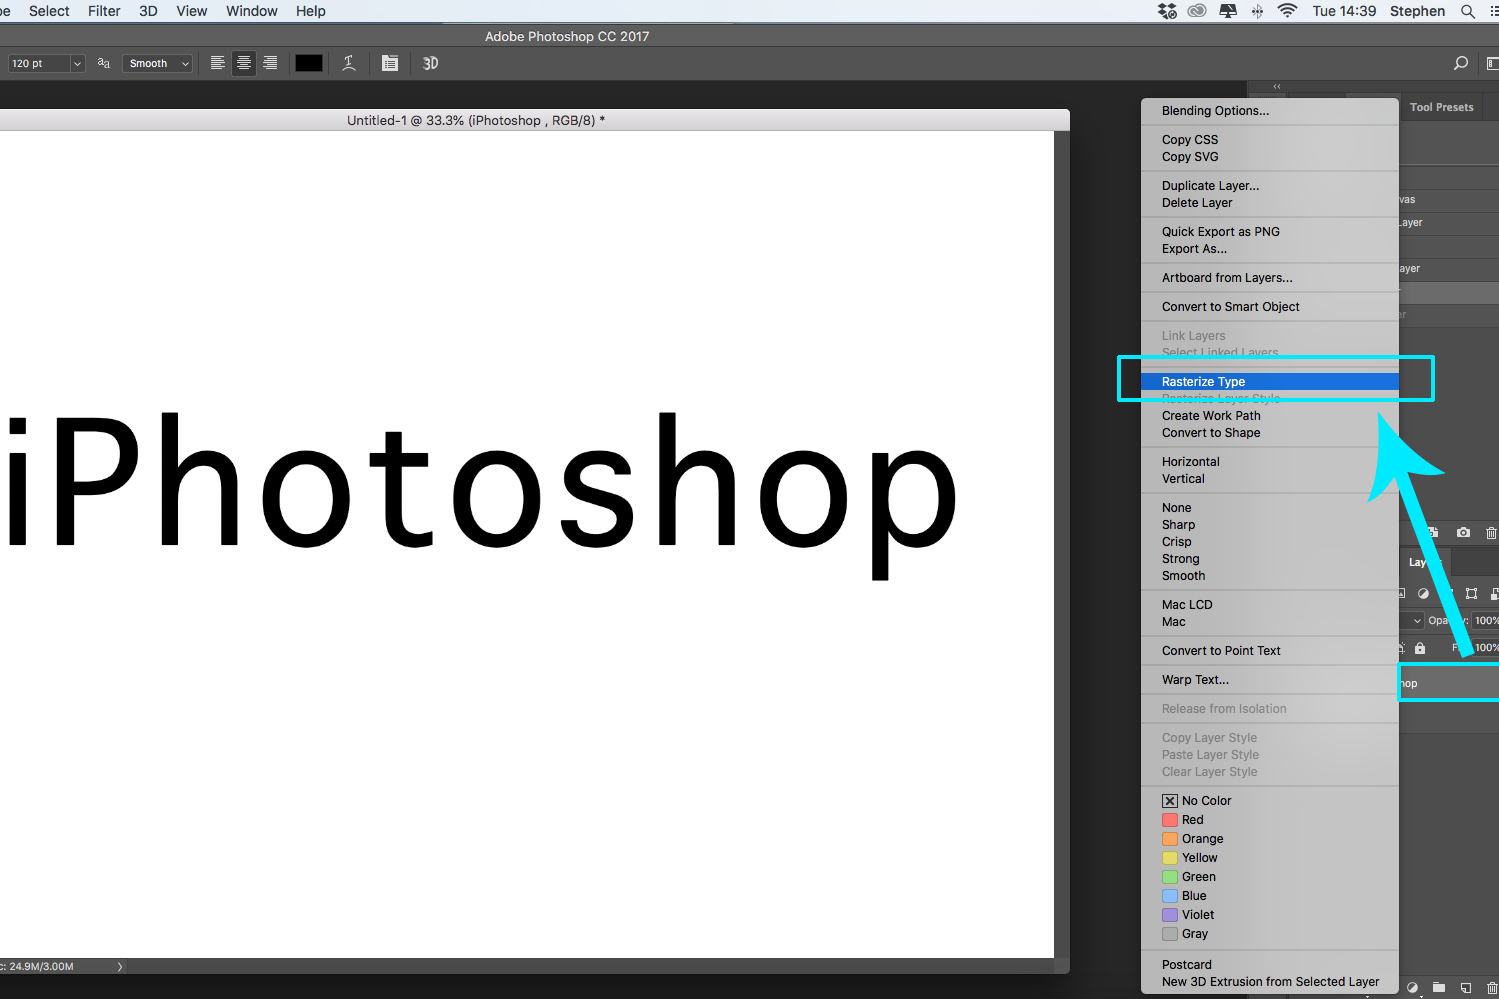 How to add logo to multiple photos in photoshop cc